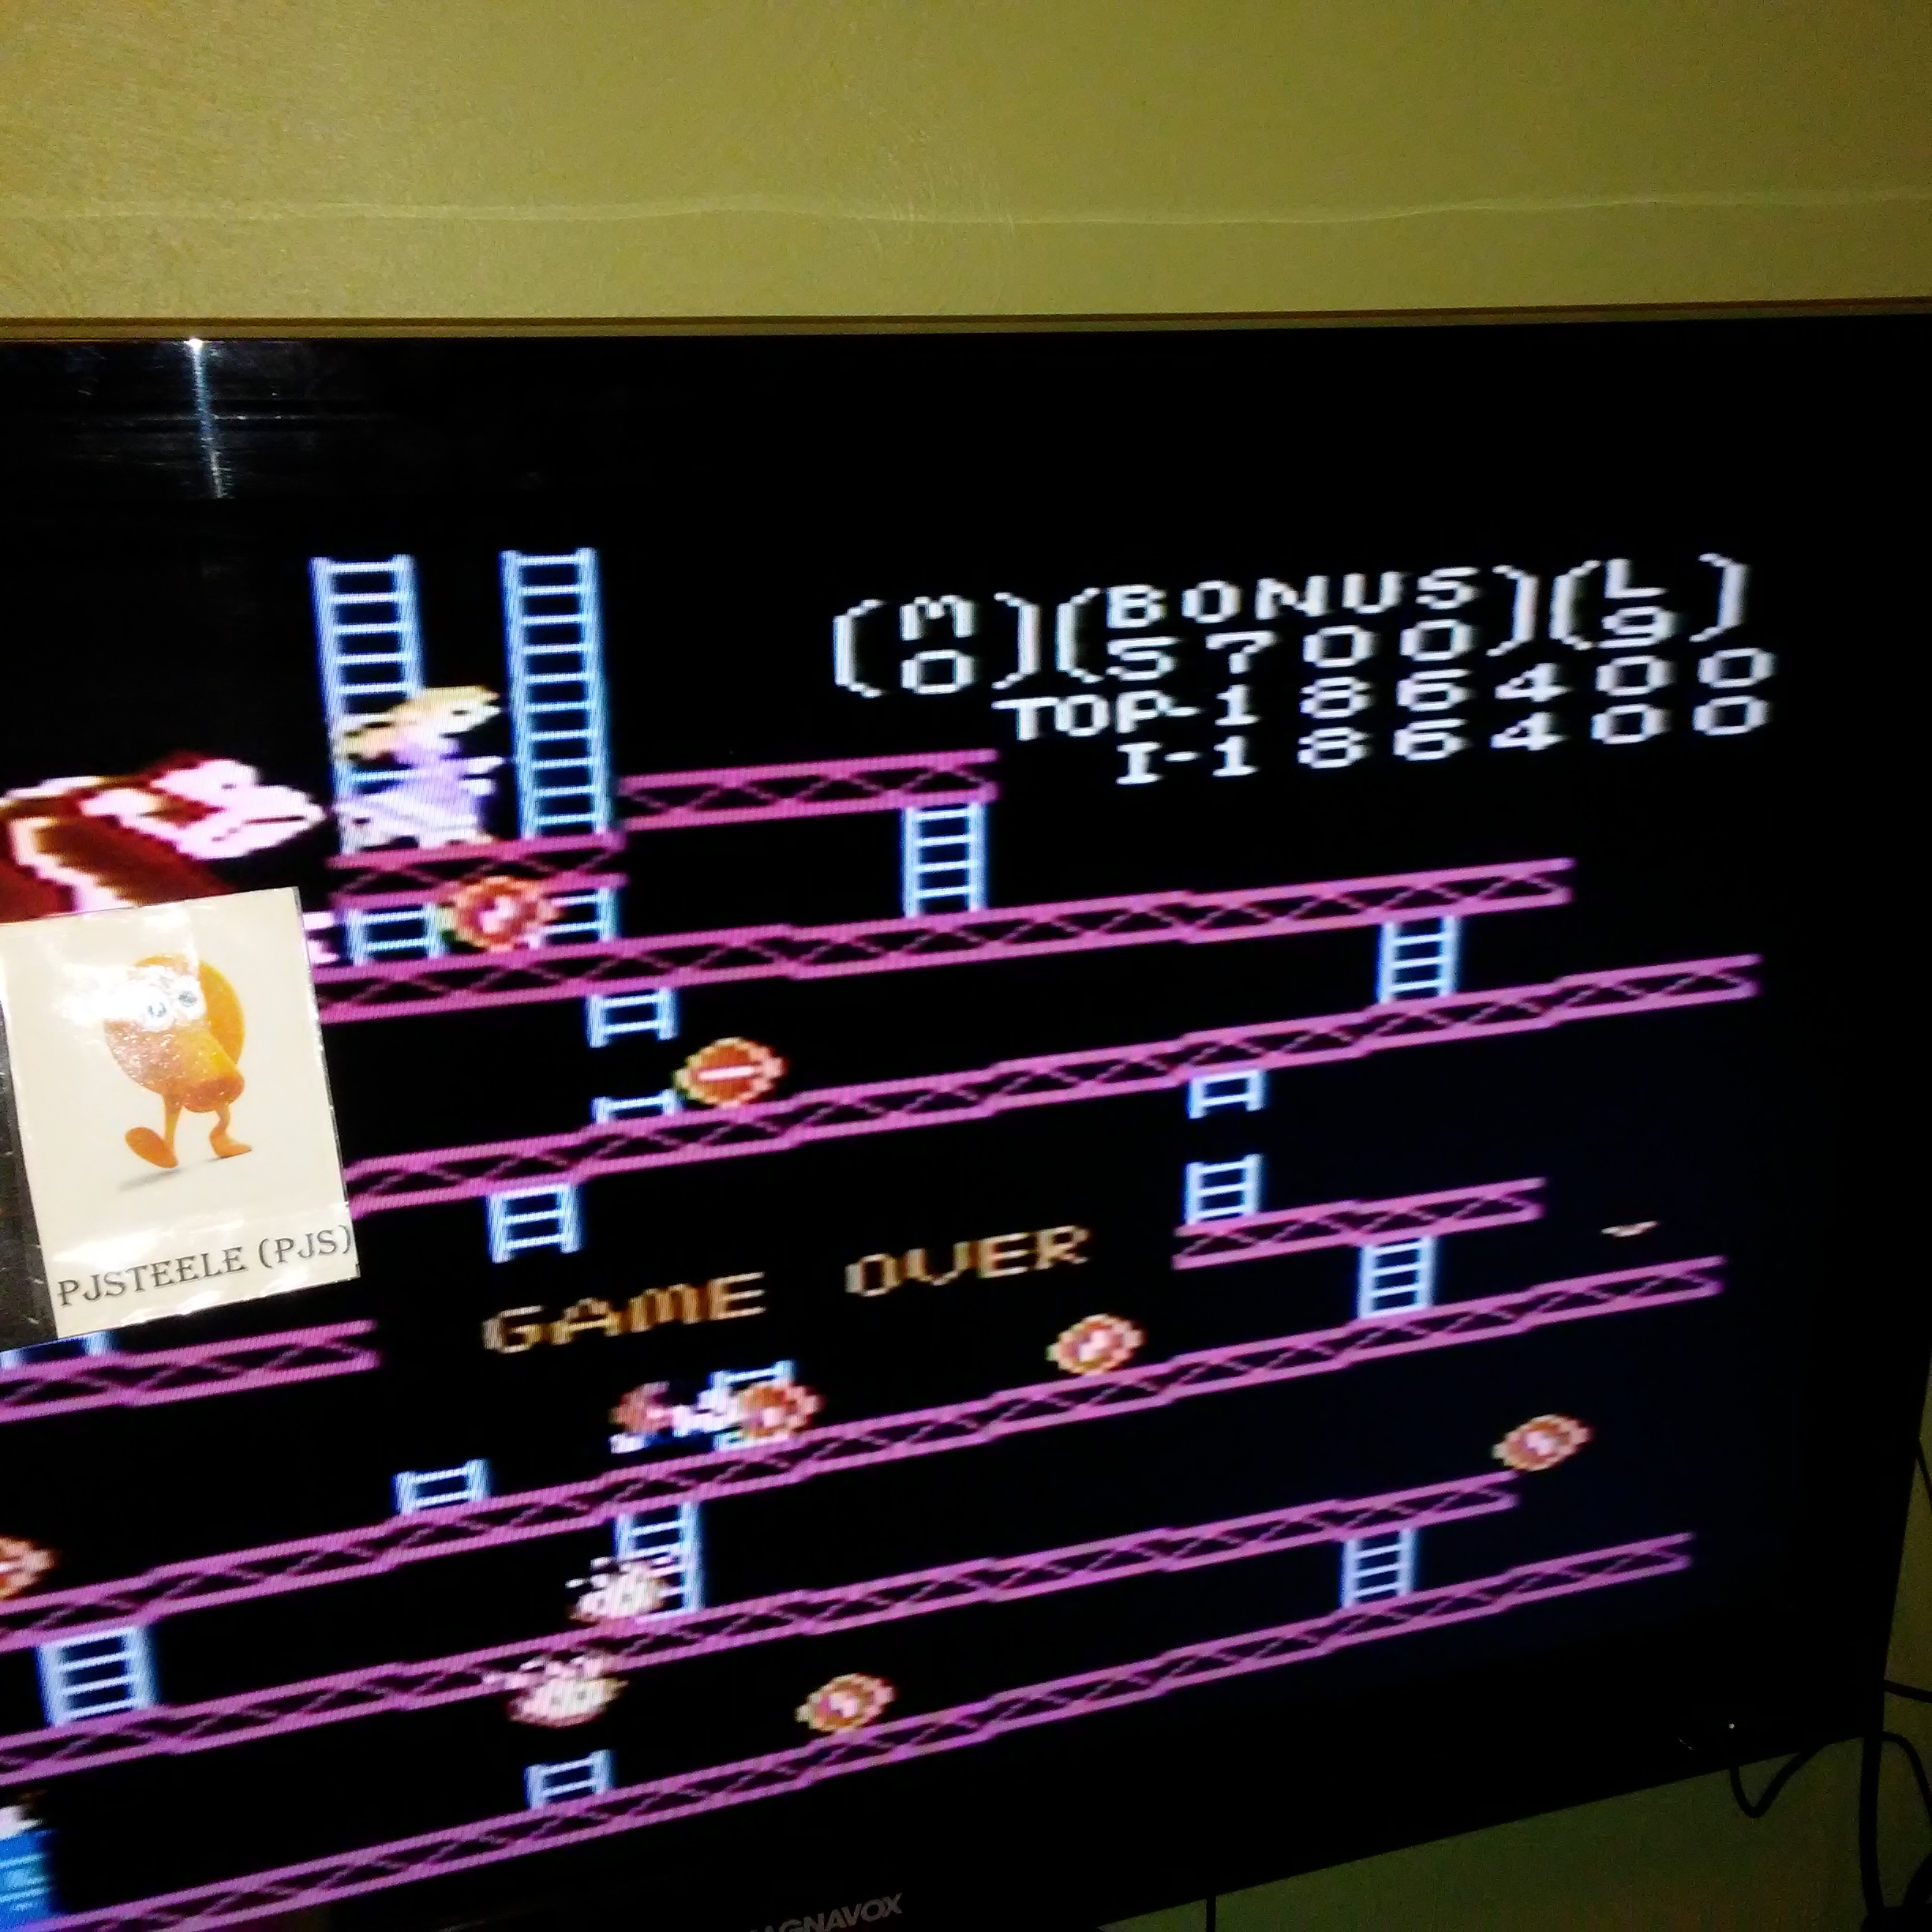 Donkey Kong: Expert 186,400 points